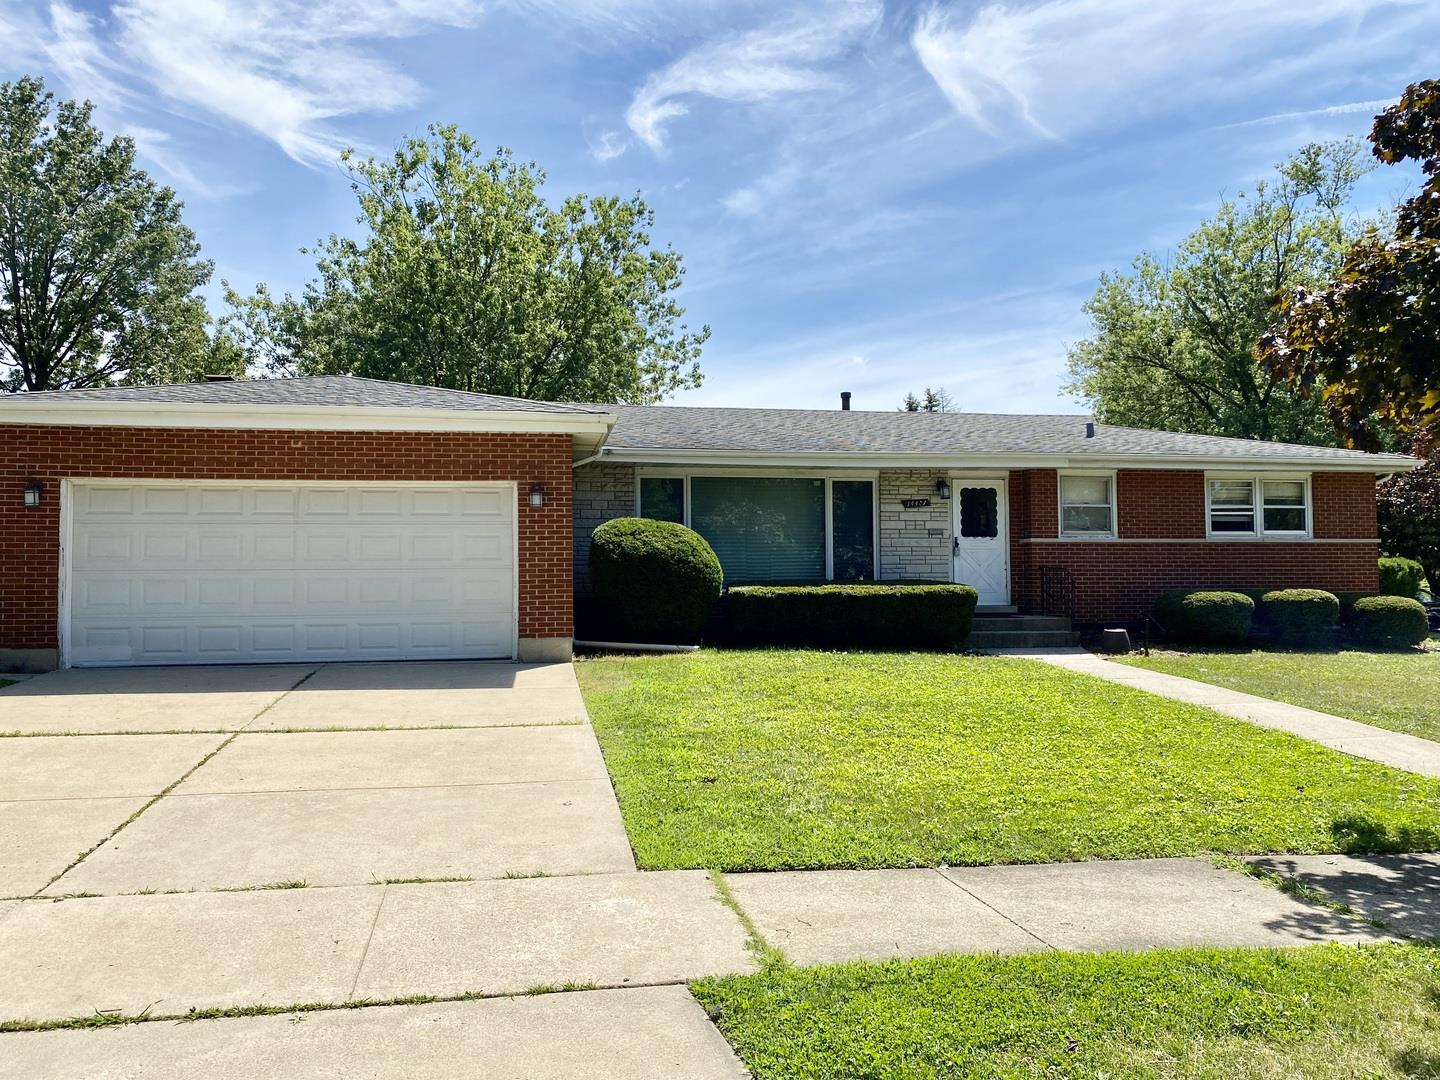 14427 S 87th Avenue, Orland Park, IL 60462 - #: 10814947